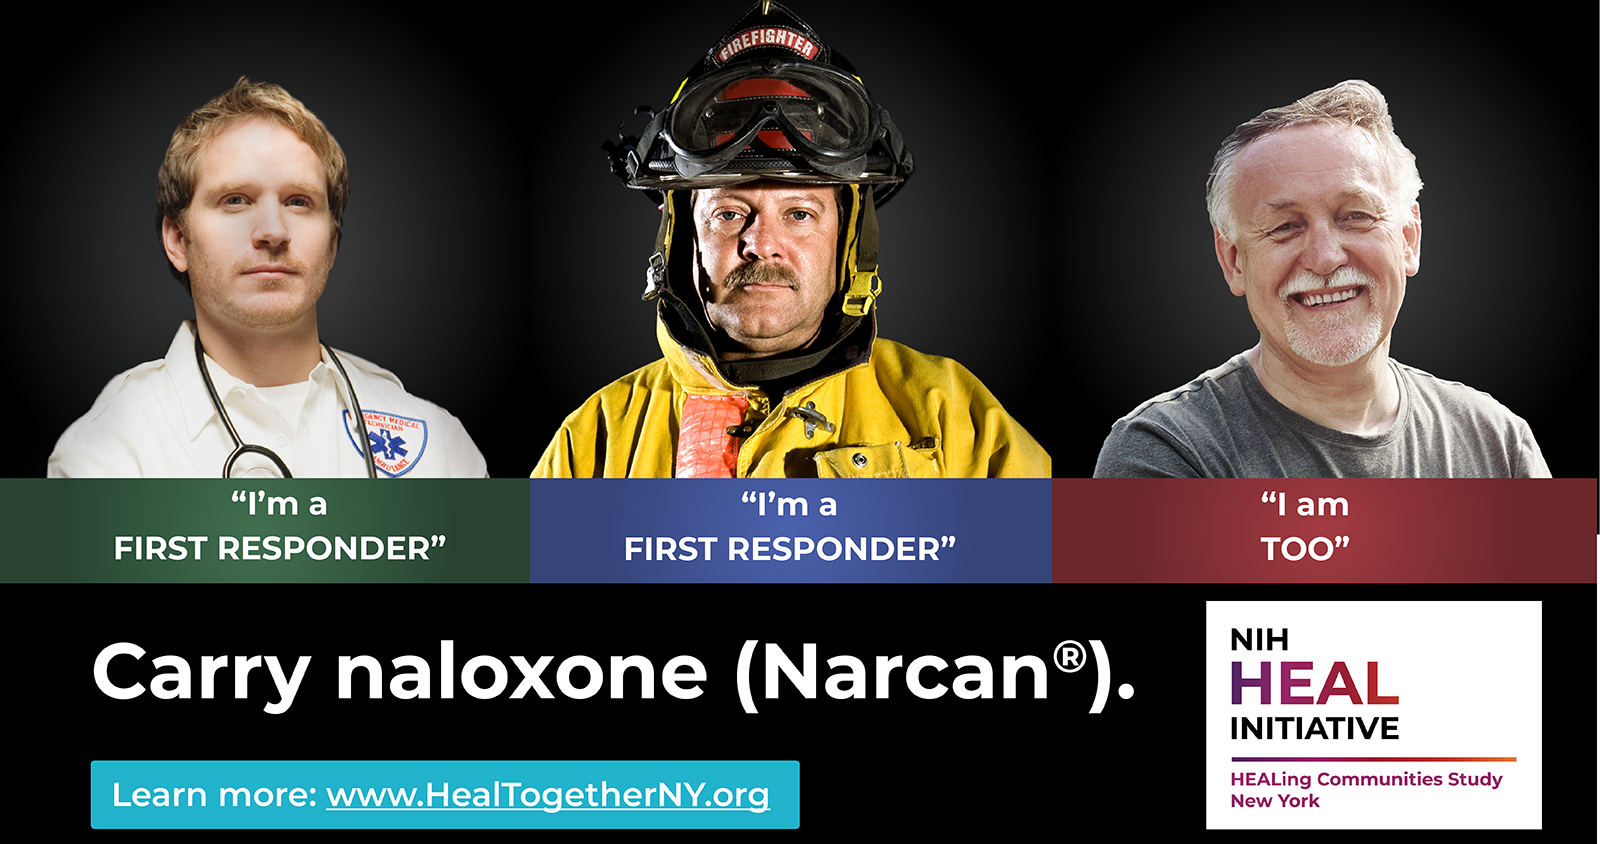 Carry Naloxone, learn more at healtogetherny.org